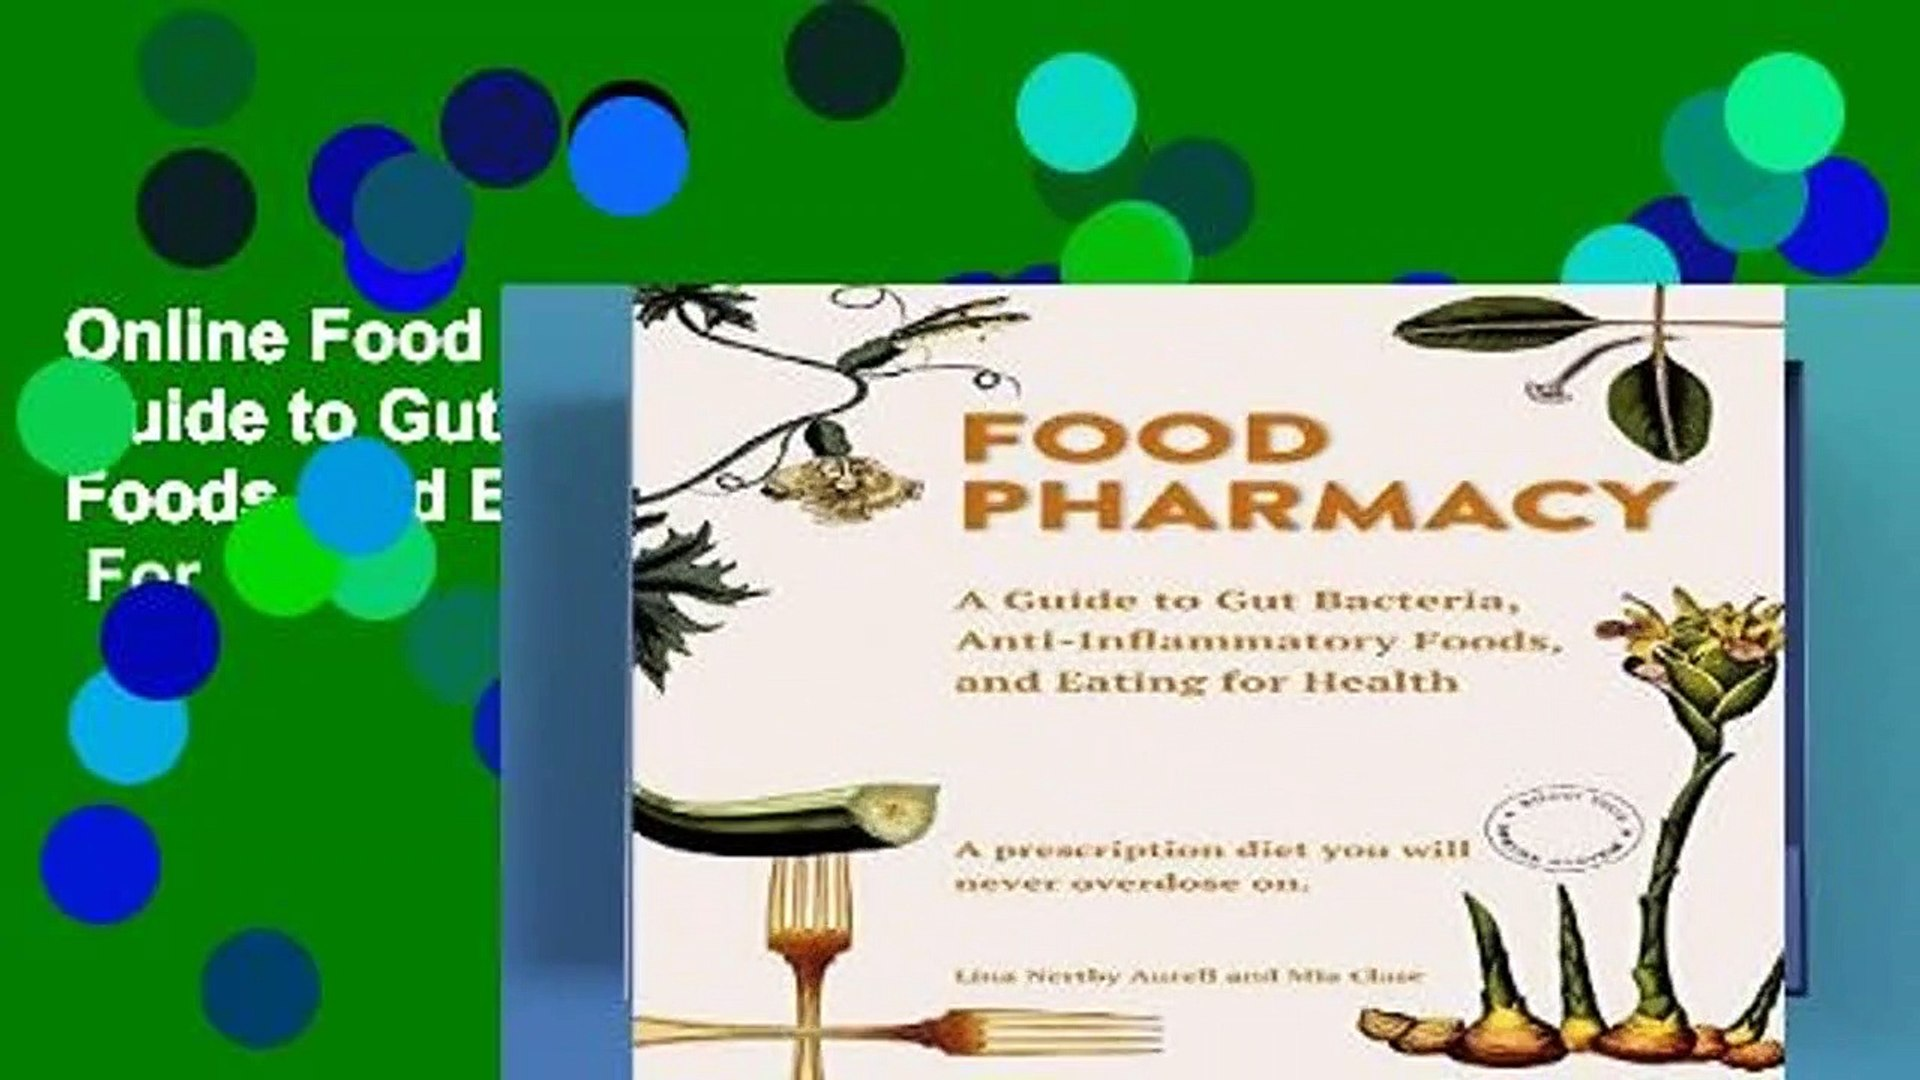 Online Food Pharmacy: A Guide to Gut Bacteria, Anti-Inflammatory Foods, and Eating for Health  For